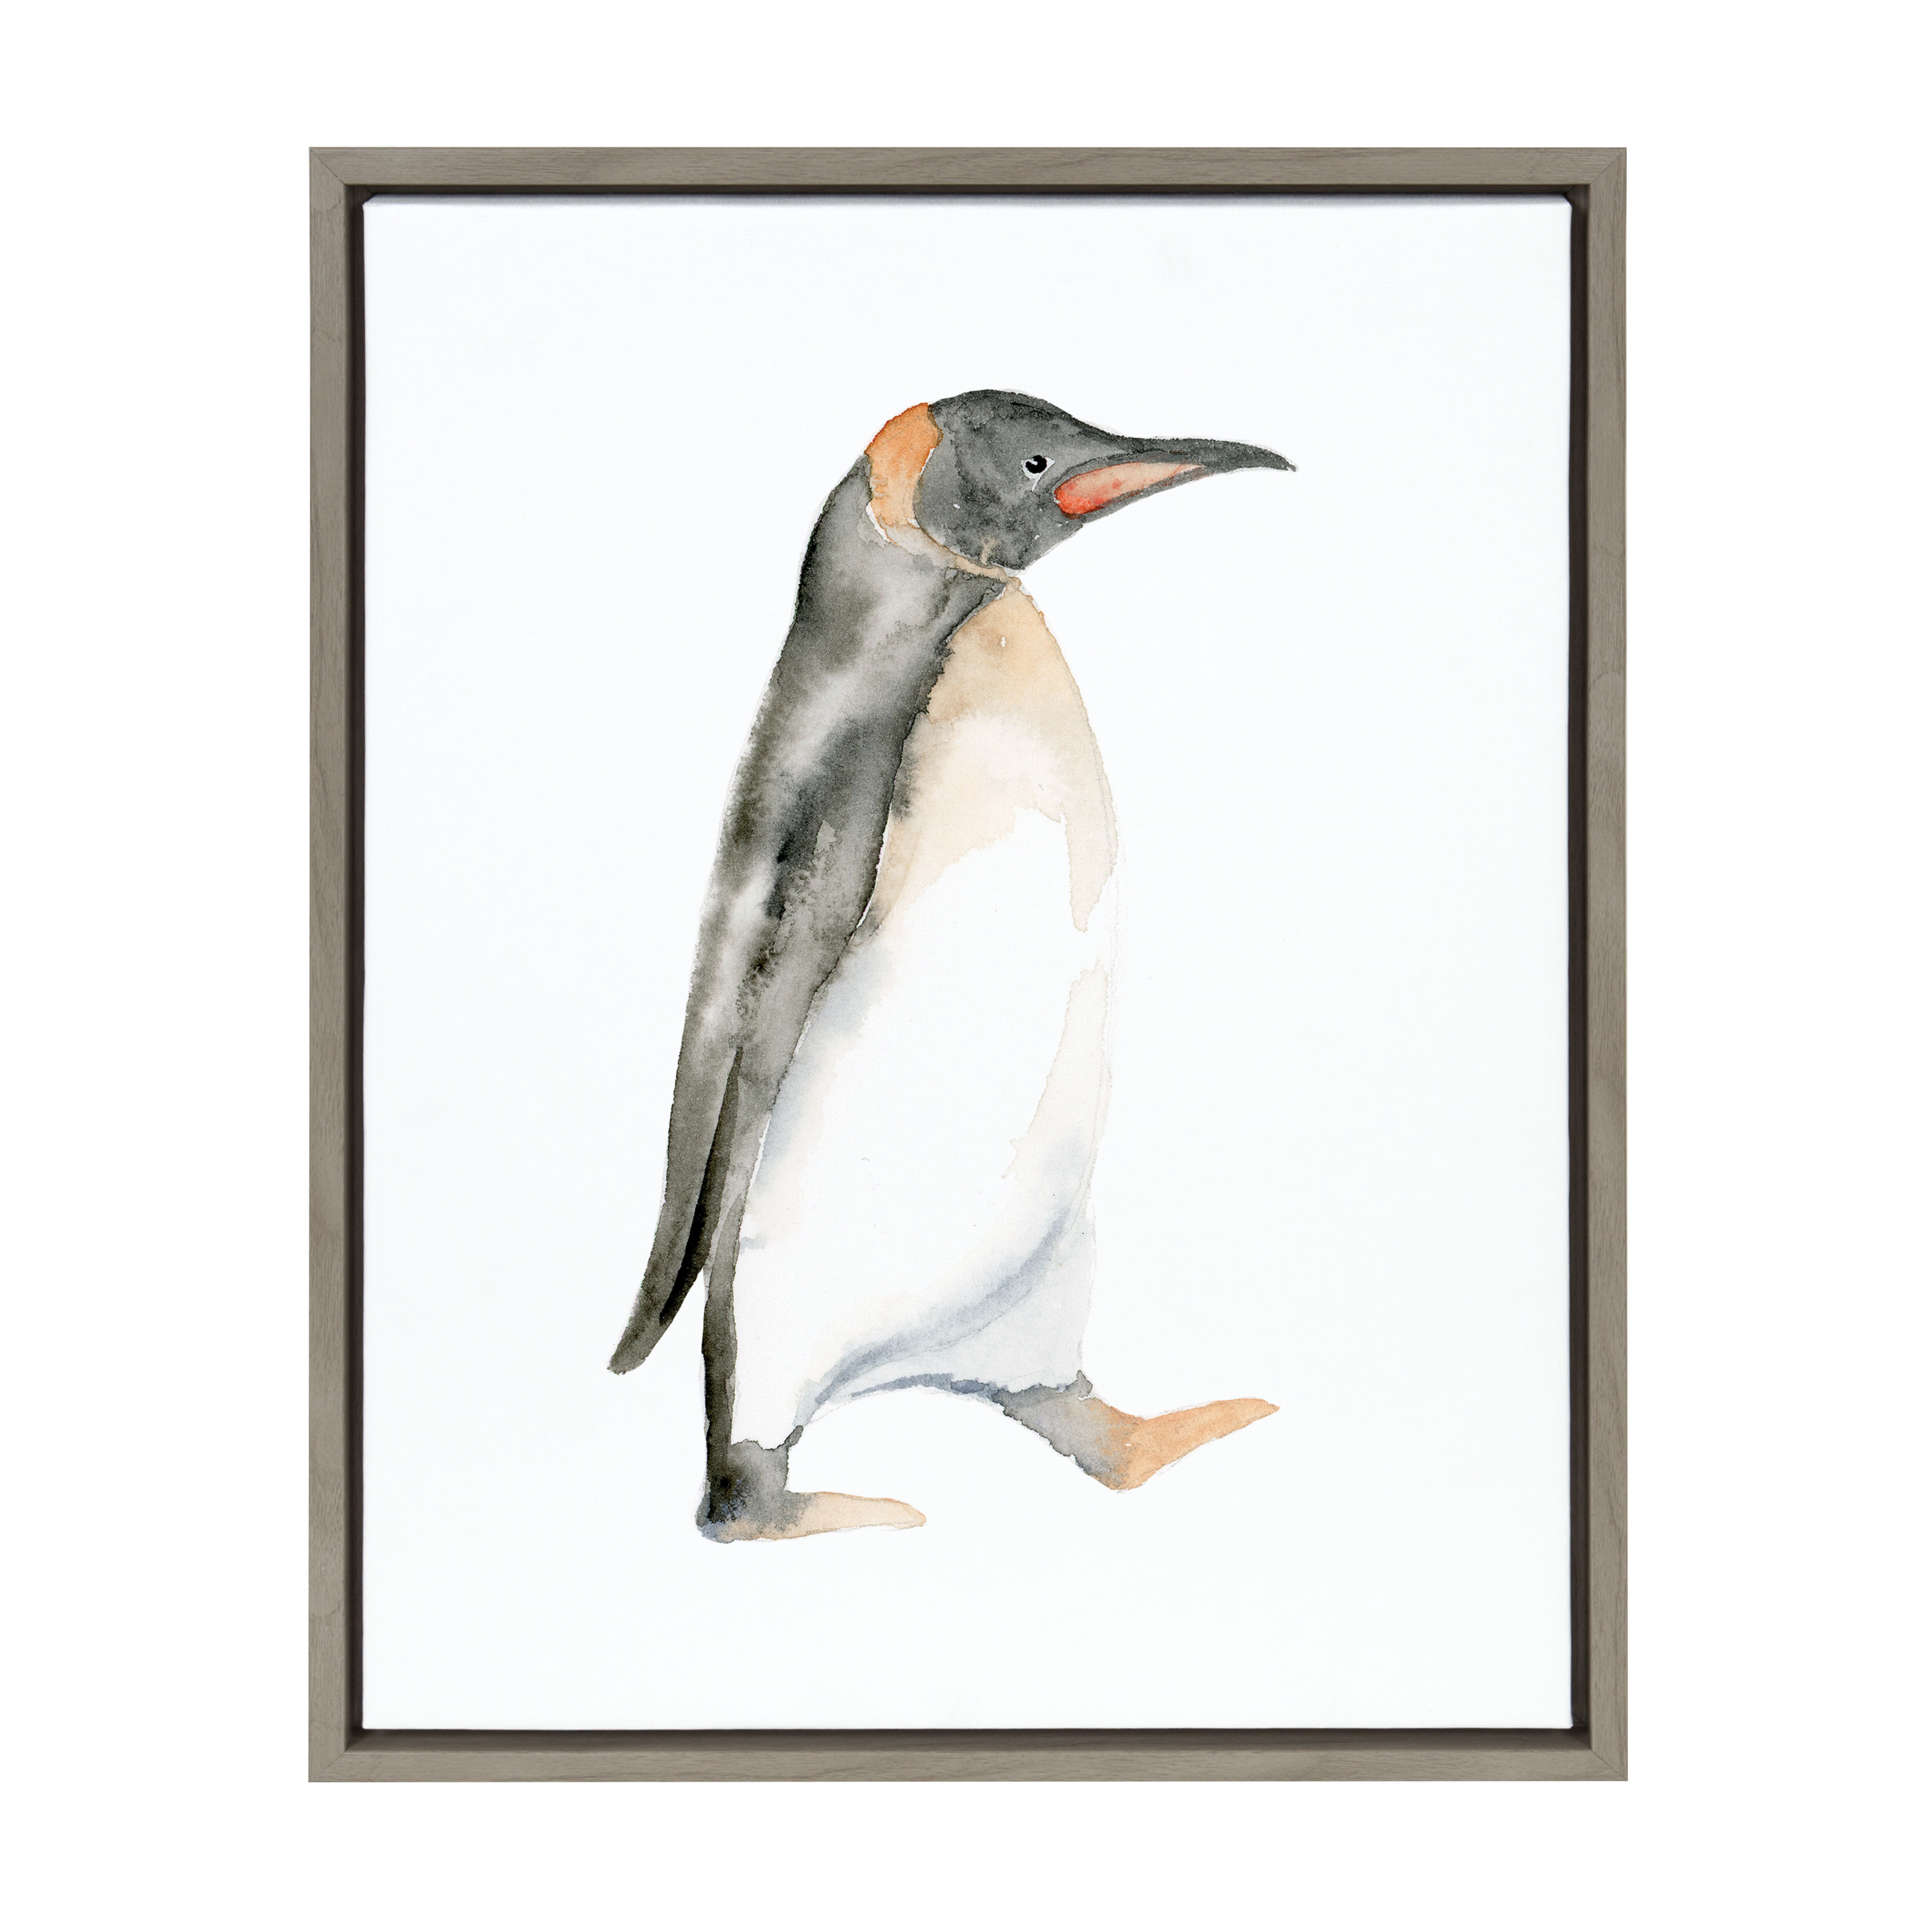 Kate and Laurel - Sylvie Black and White Waddling Penguin Framed Watercolor Print on Canvas by Cathy Zhang, Gray 18 x 24